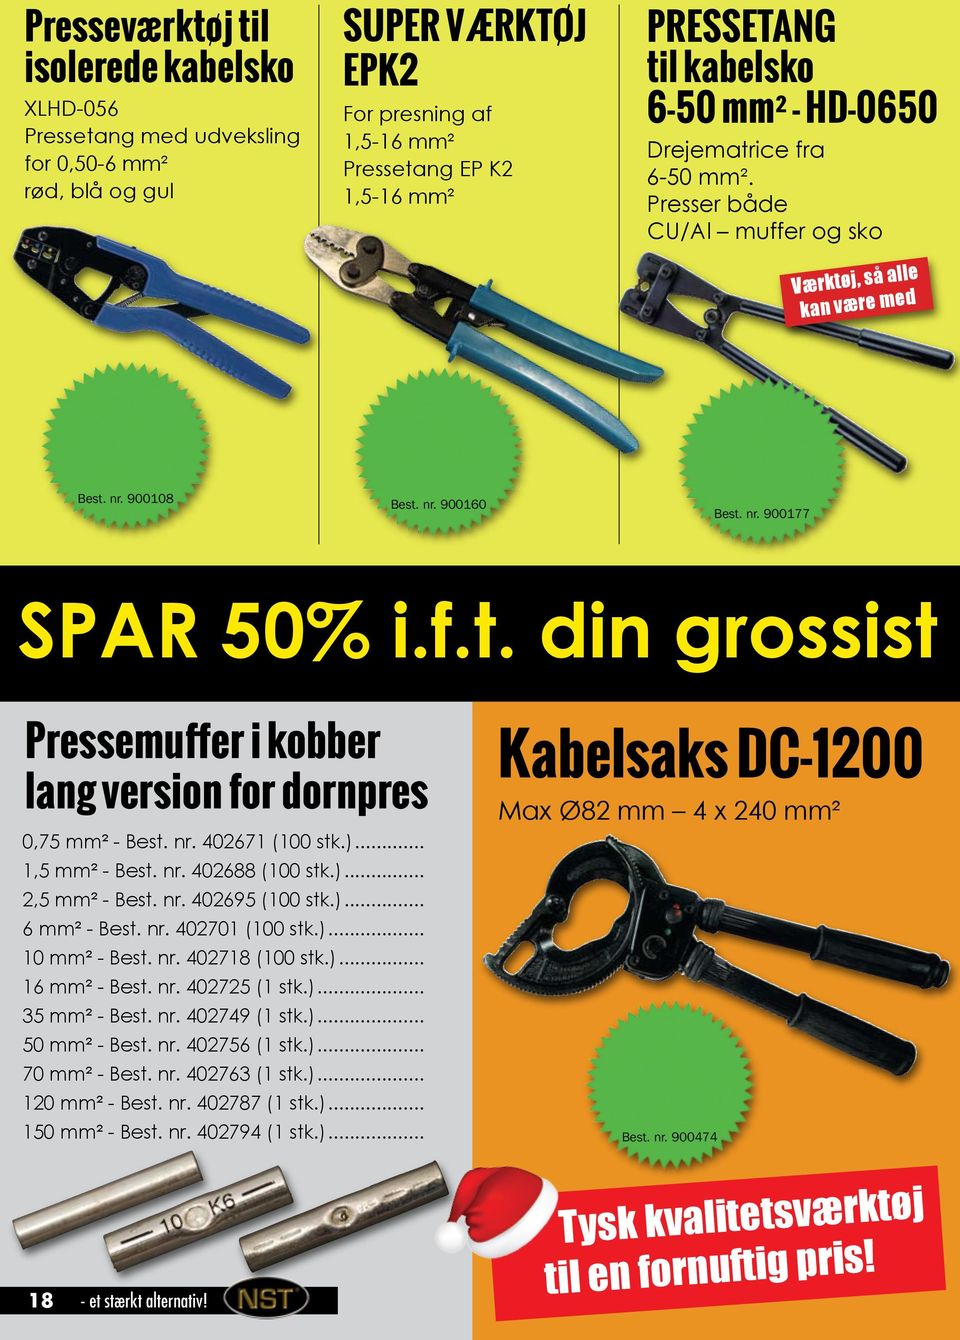 nr. 402671 (100 stk.)... 1,5 mm² - Best. nr. 402688 (100 stk.)... 2,5 mm² - Best. nr. 402695 (100 stk.)... 6 mm² - Best. nr. 402701 (100 stk.)... 10 mm² - Best. nr. 402718 (100 stk.)... 16 mm² - Best.